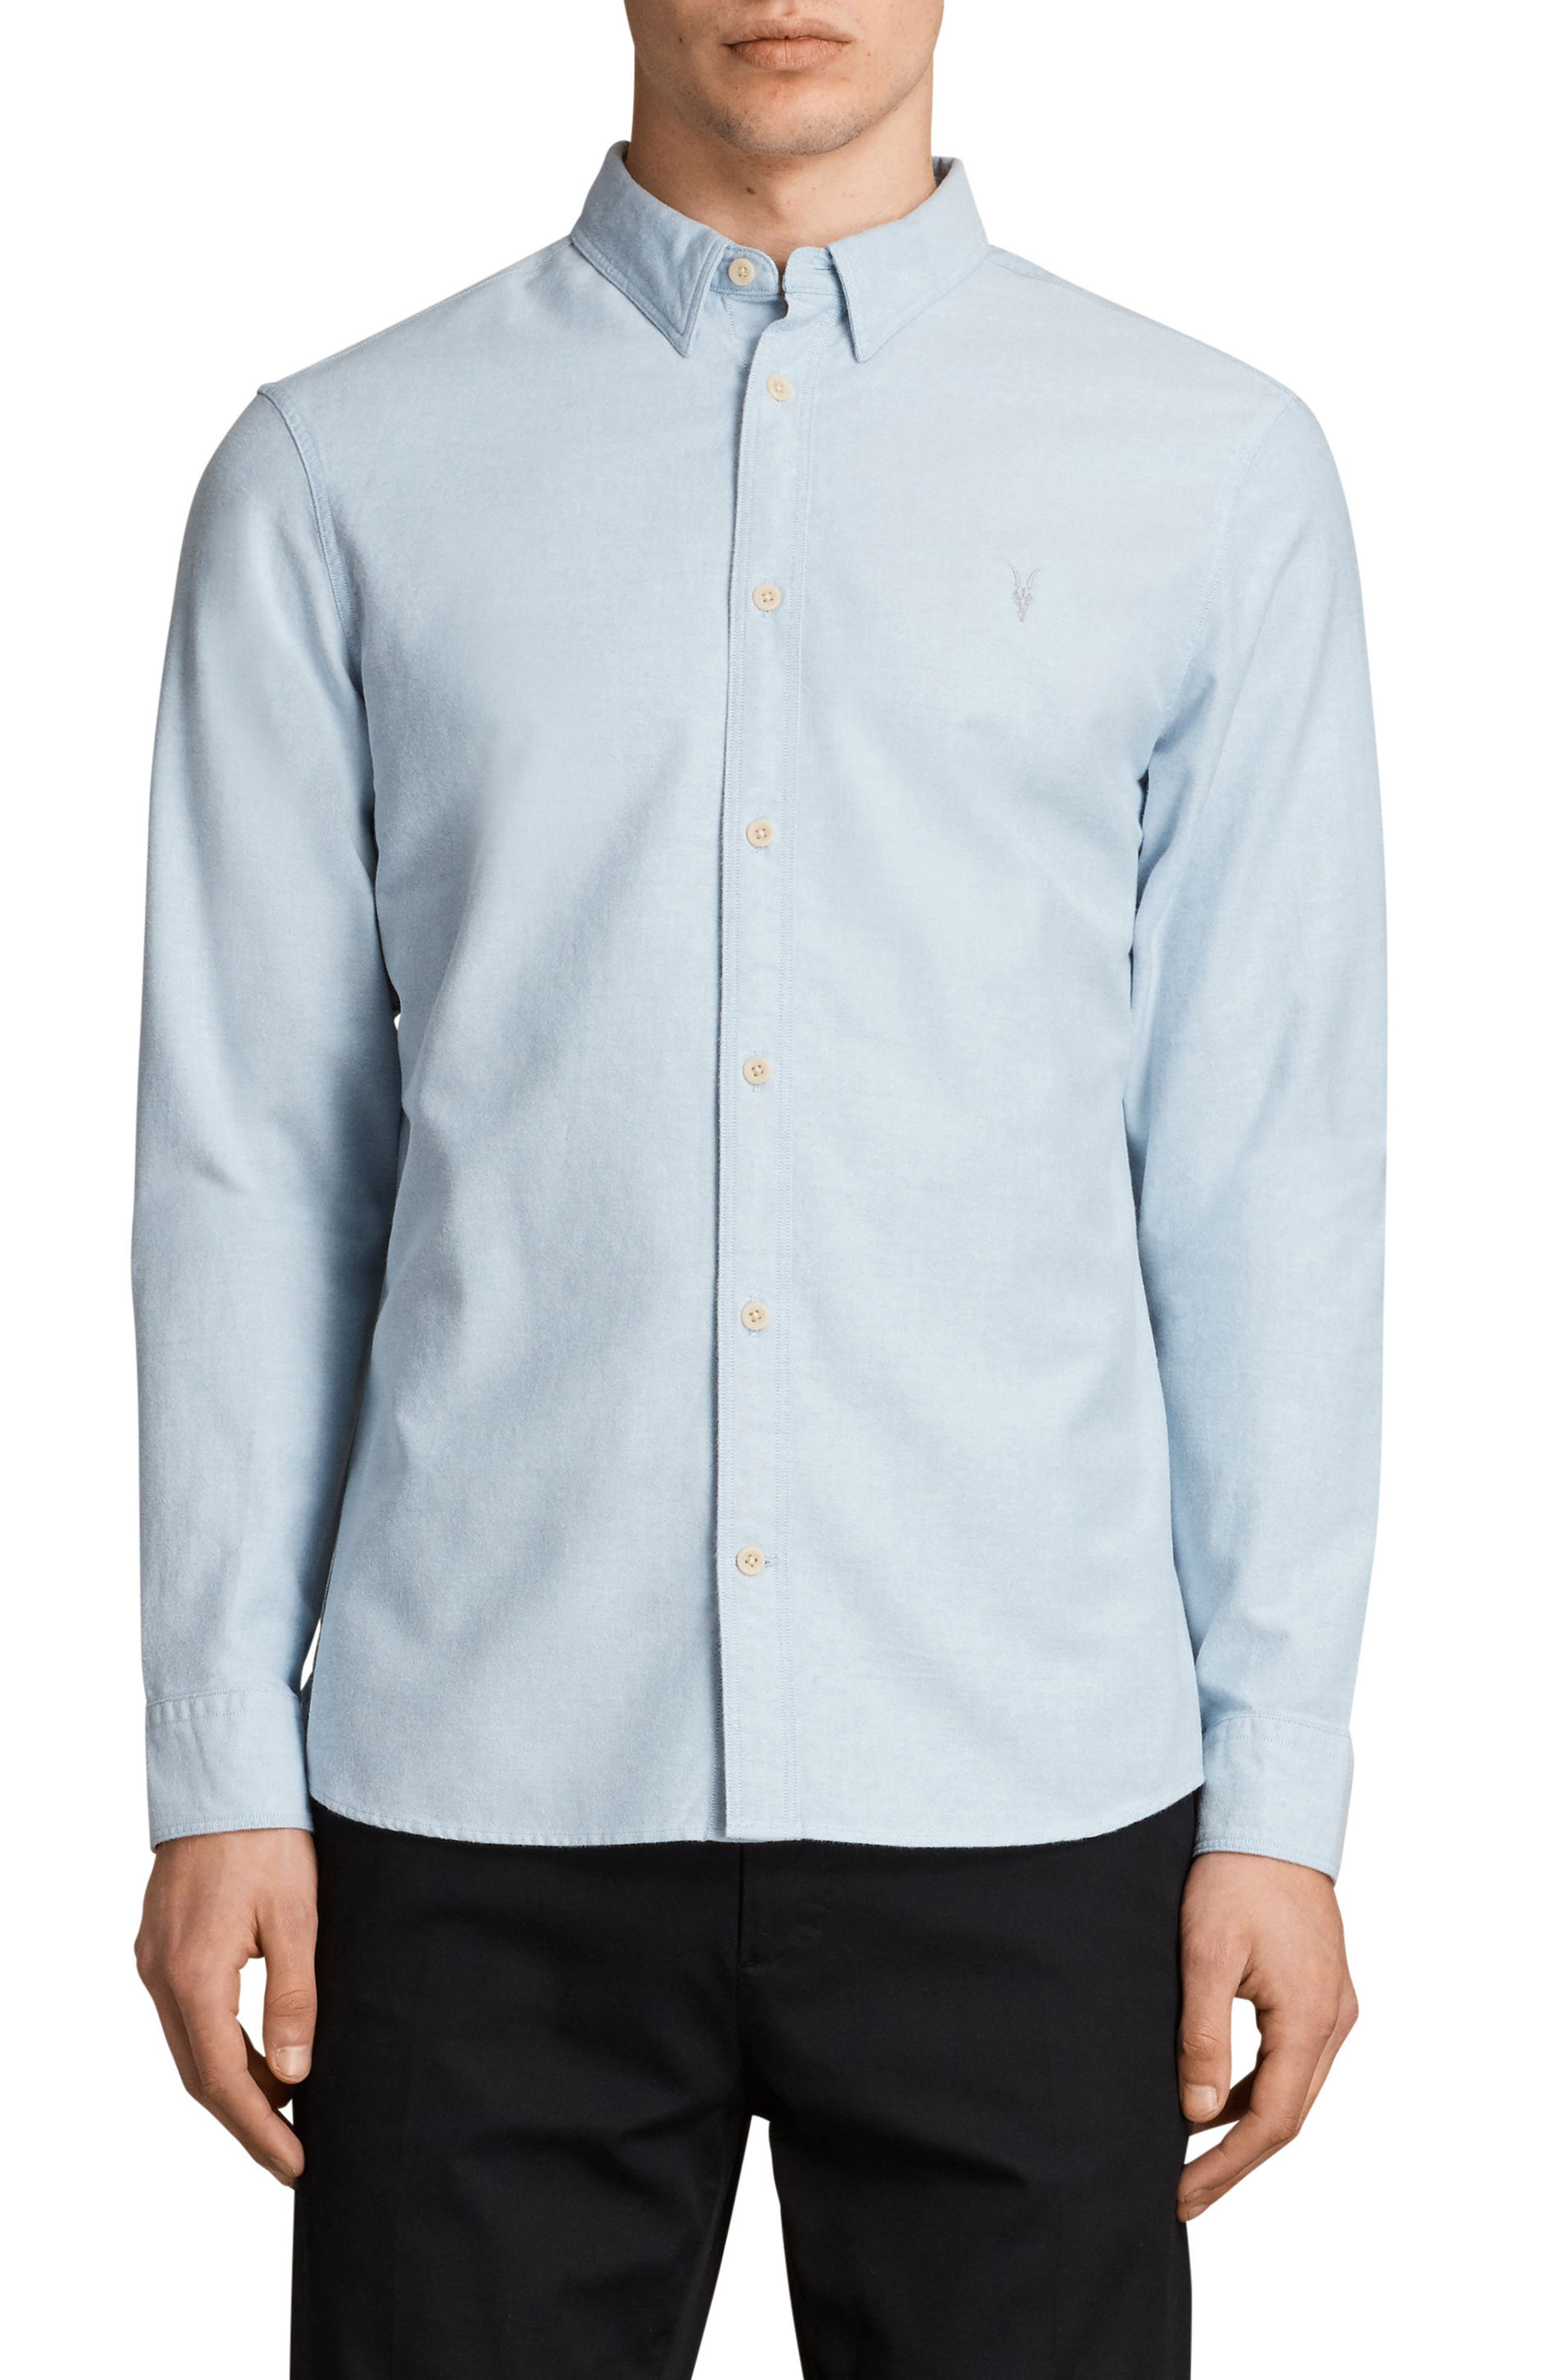 Huntington Regular Fit Sport Shirt,                         Main,                         color, Light Blue